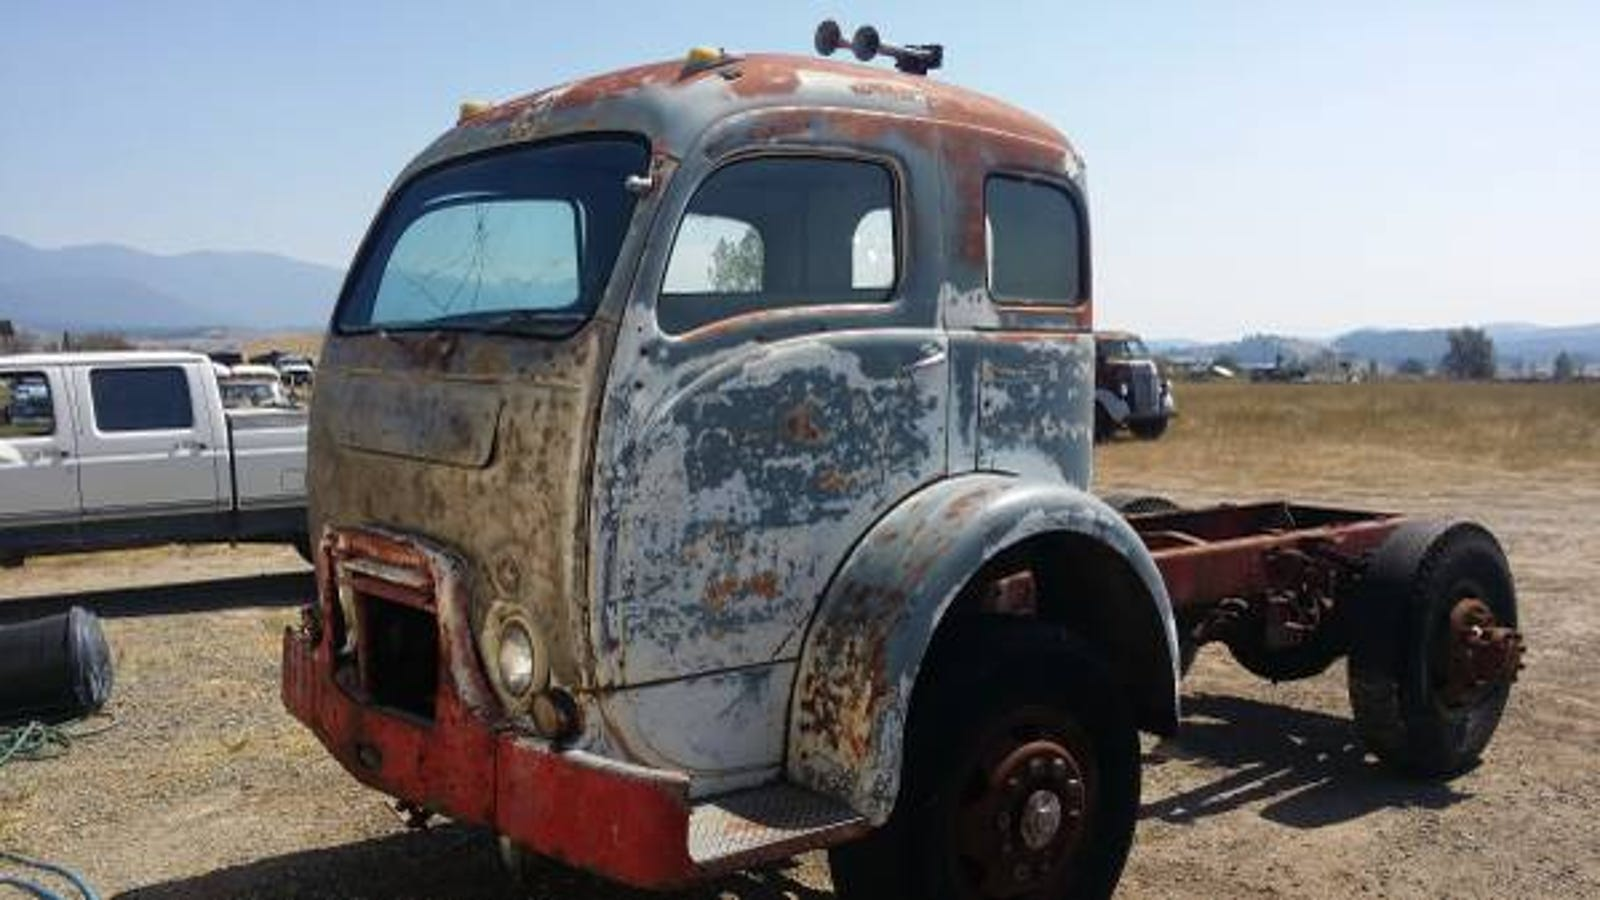 Coe truck for sale craigslist | Car Reviews